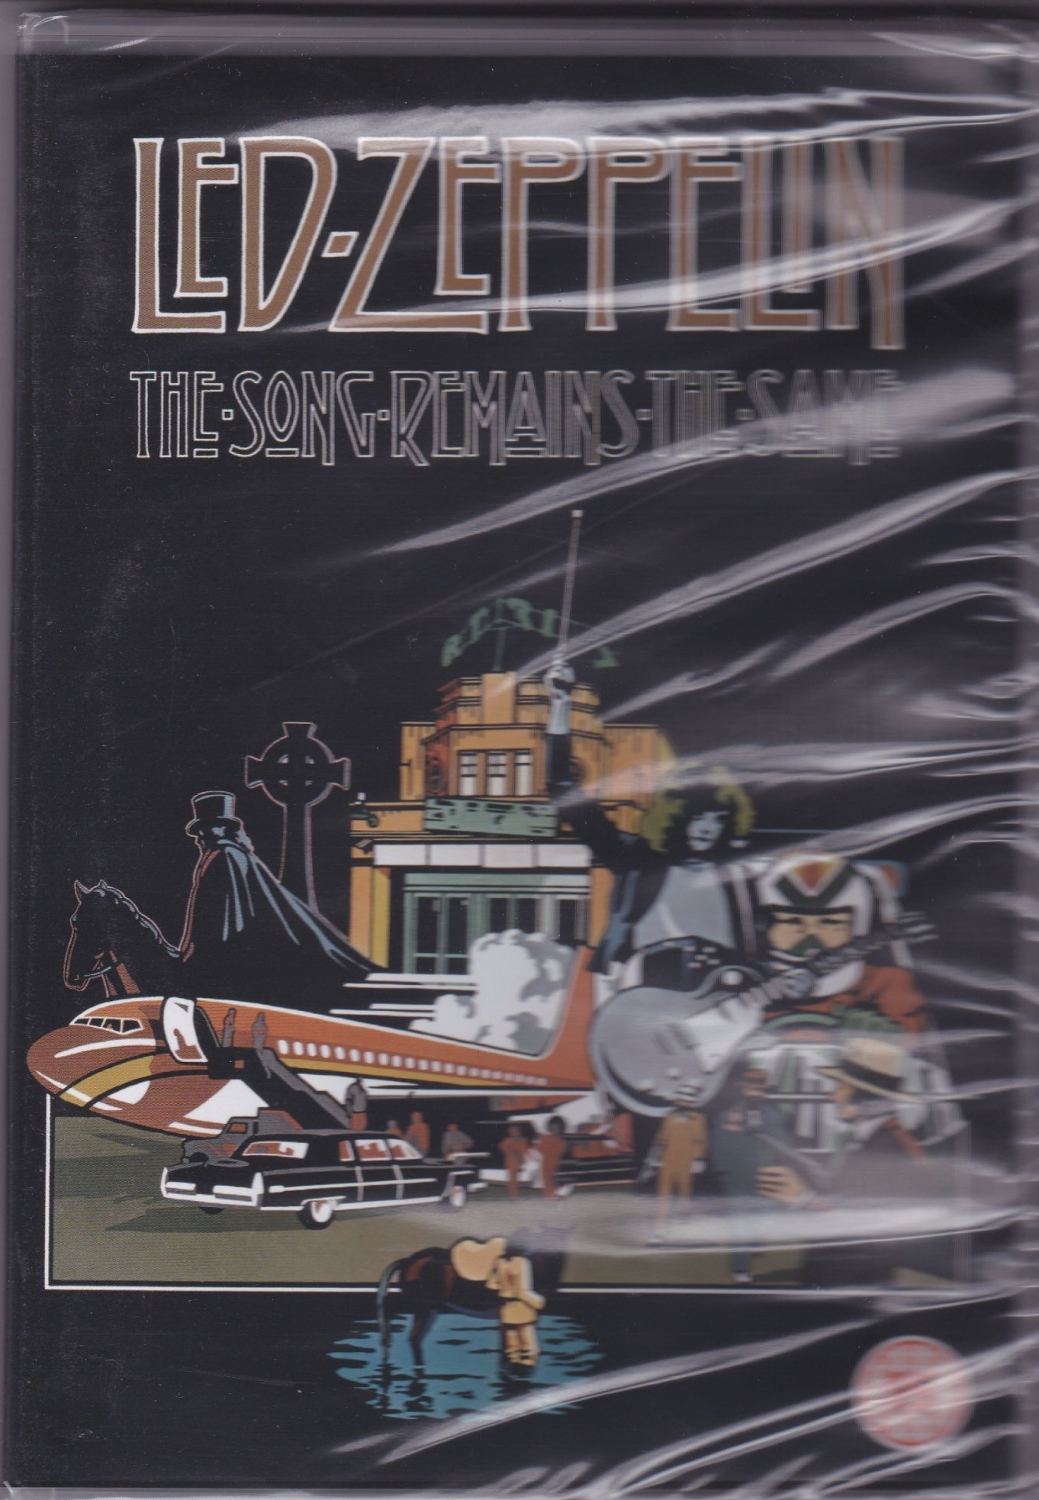 Led Zeppelin      The Song Remains The Same     20012 Region 2 DVD